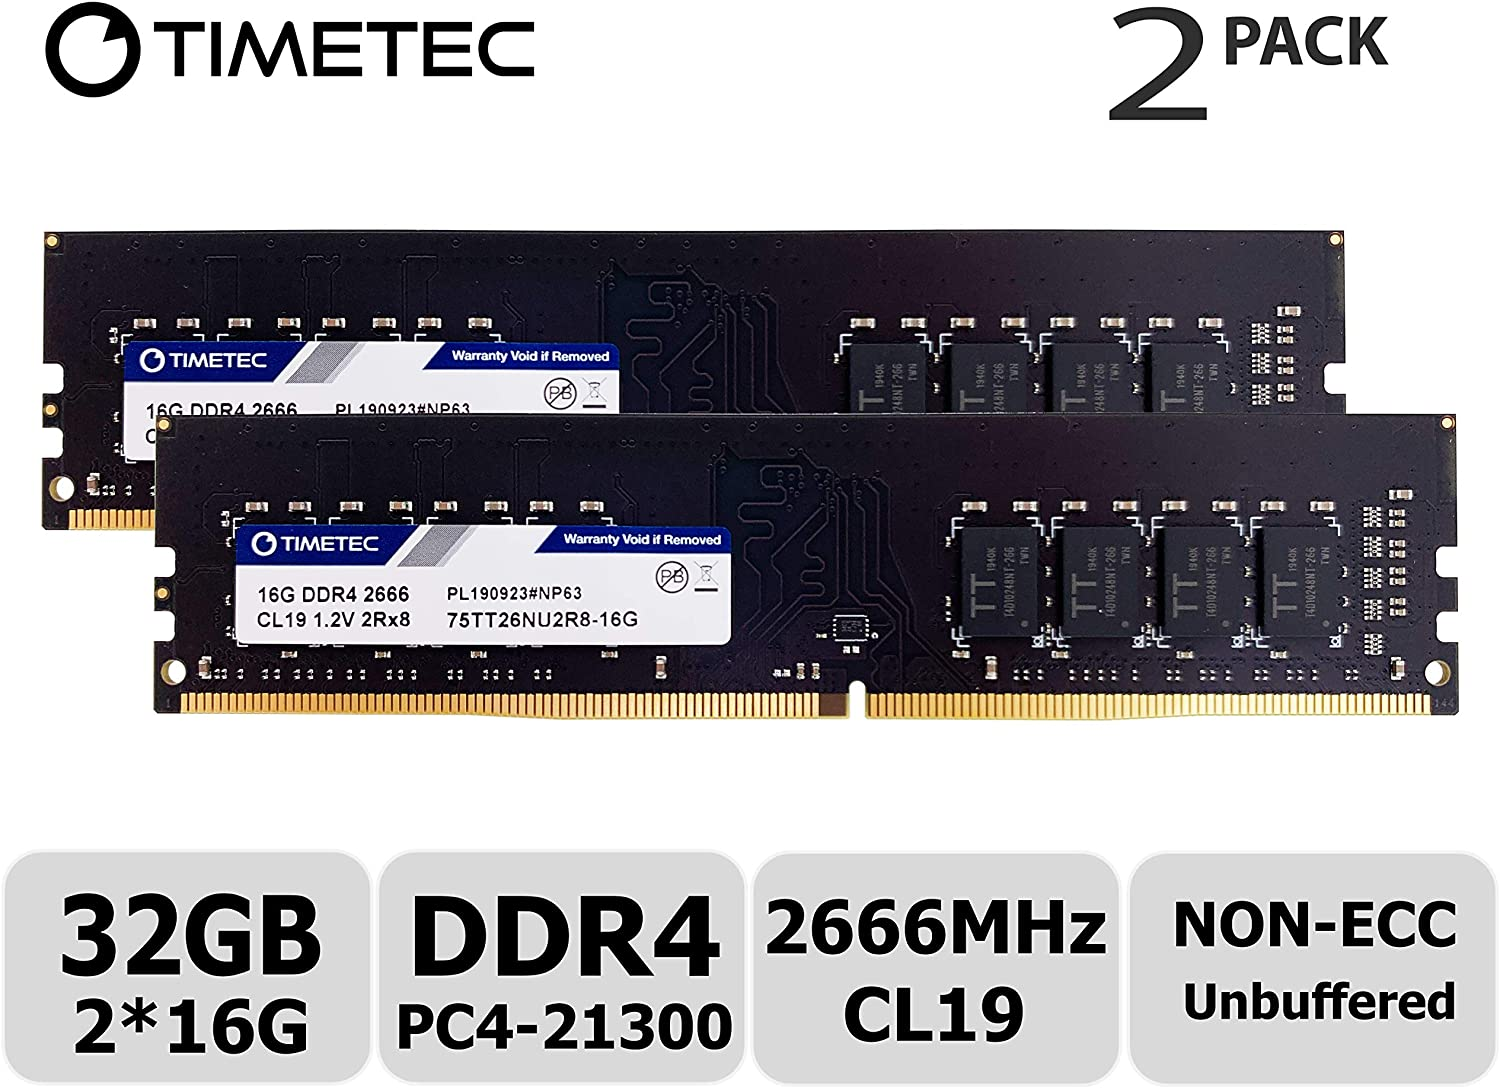 Timetec Hynix IC 32GB Kit (2x16GB) DDR4 2666MHz PC4-21300 Unbuffered Non-ECC 1.2V CL19 2Rx8 Dual Rank 288 Pin UDIMM Desktop Memory RAM Module Upgrade (32GB Kit (2x16GB))